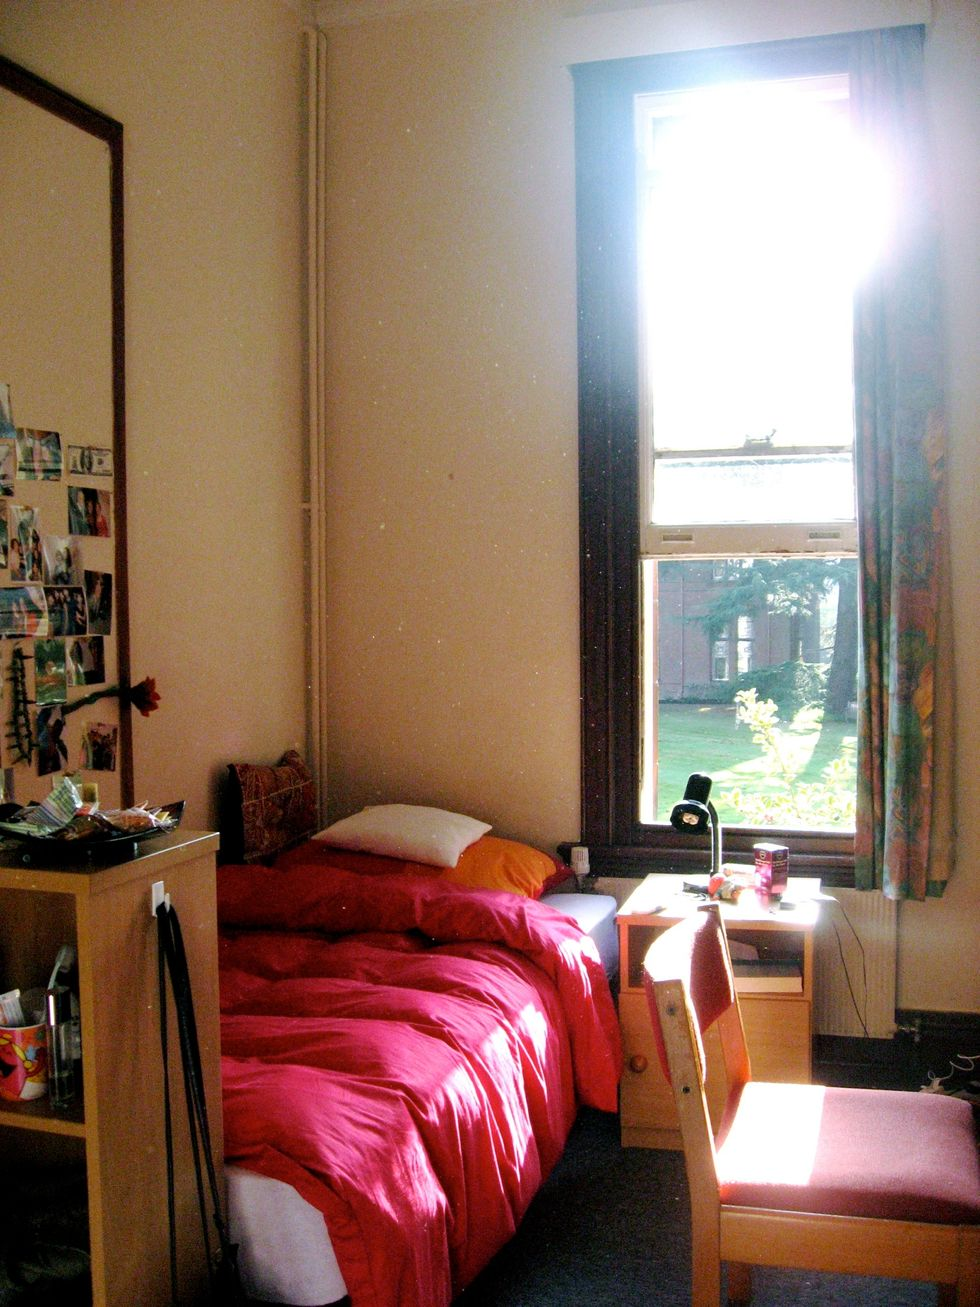 Being Honest With Your Roommate Right Off The Bat Can Drastically Change How Your Year Goes